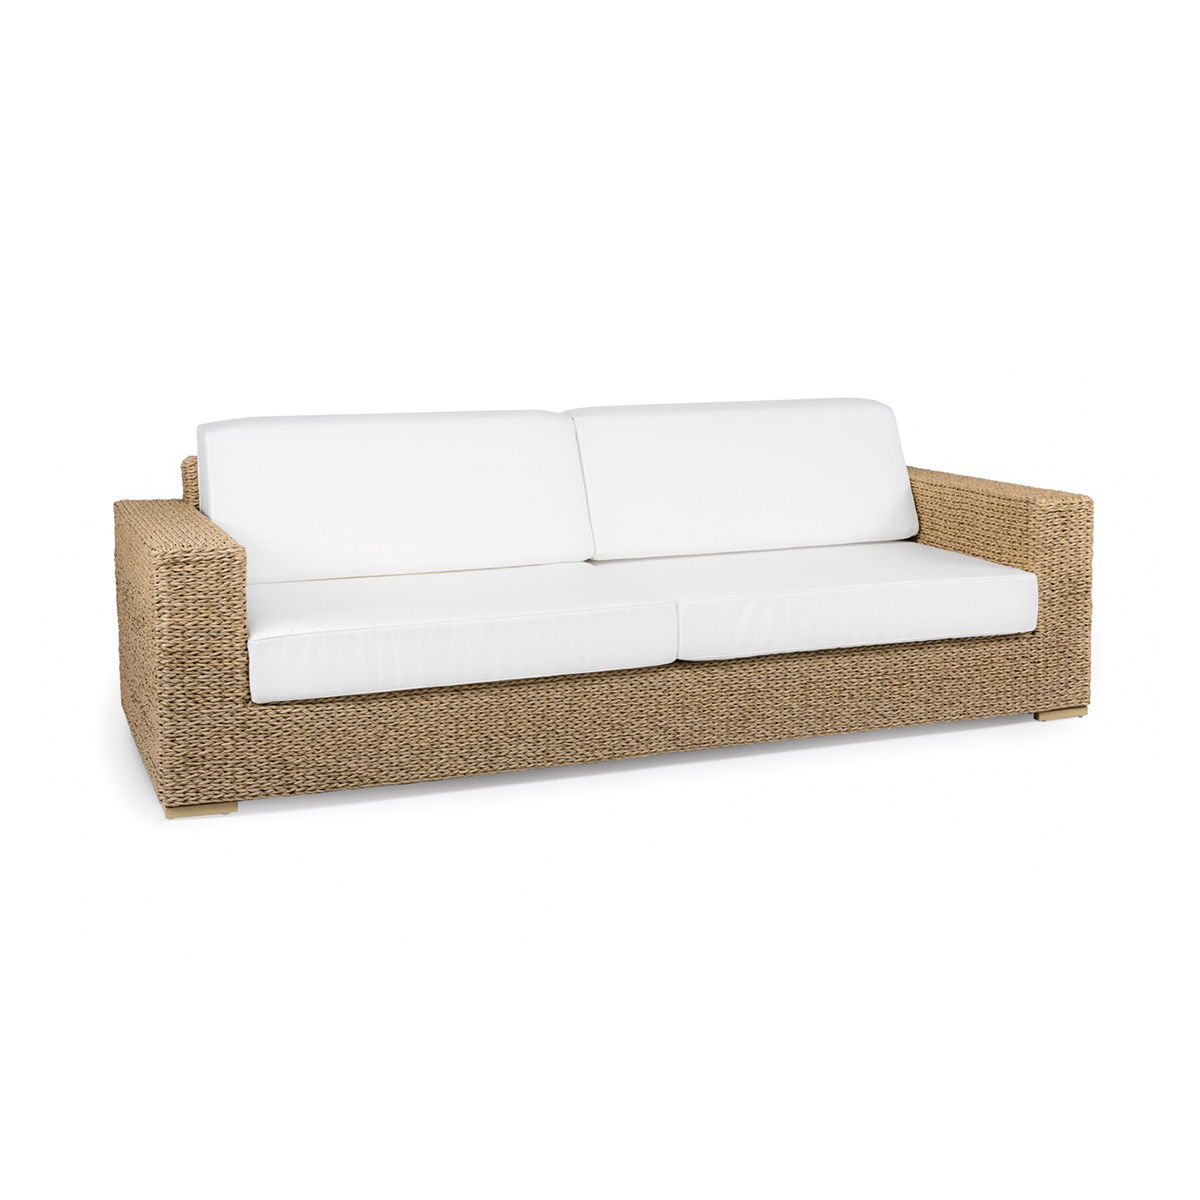 3 seated sofa Berenice Braid